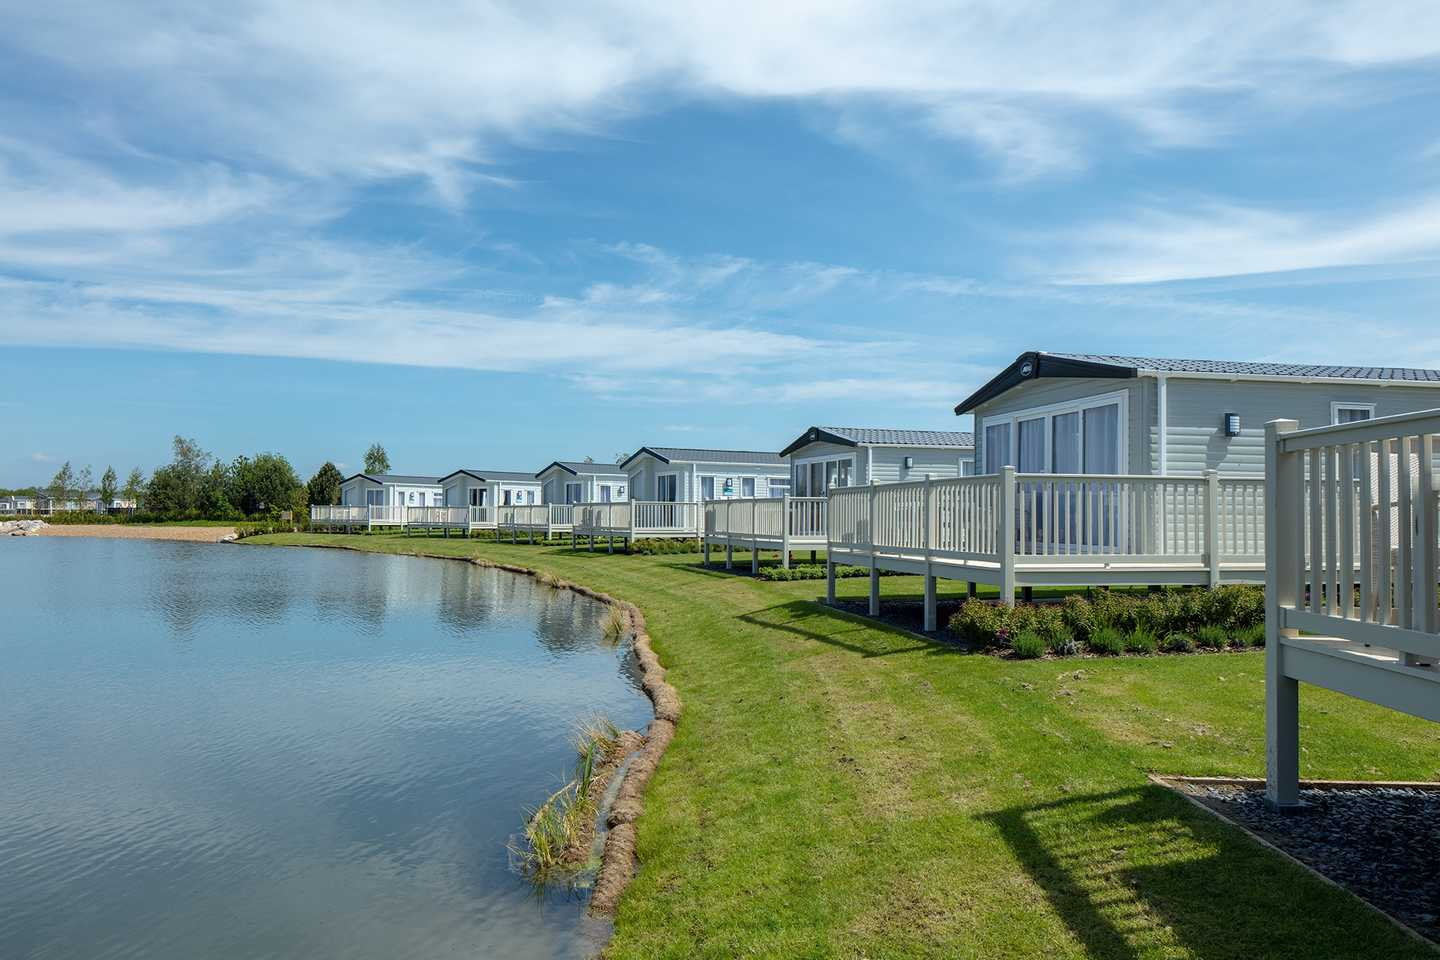 Platinum caravans at Lakeland